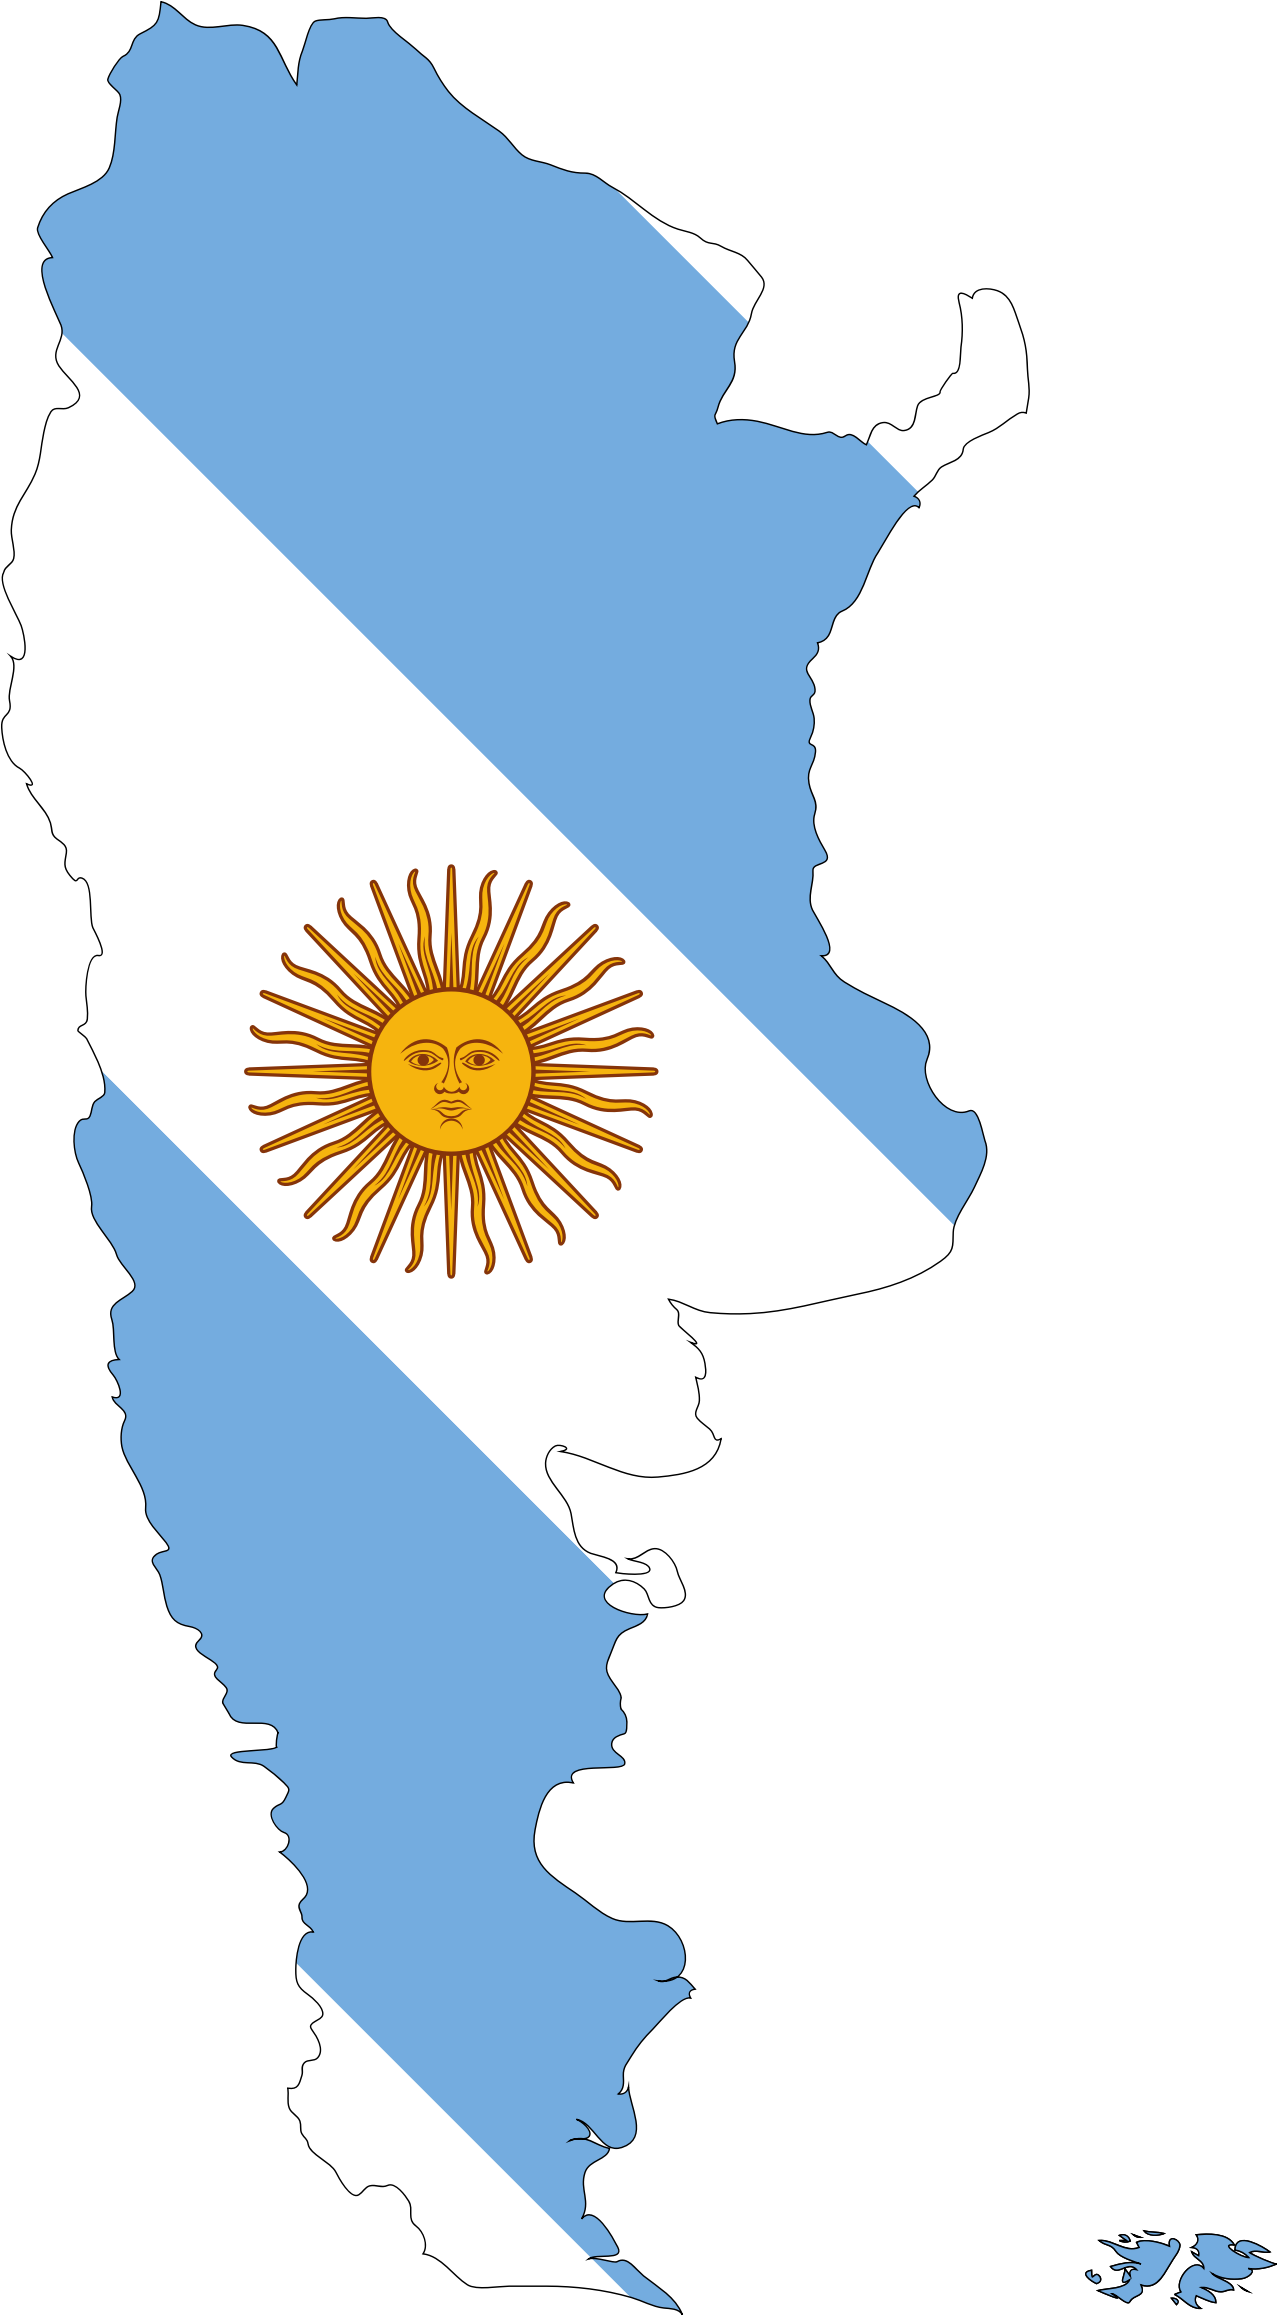 Clipart Argentina Map Flag - Argentina map download